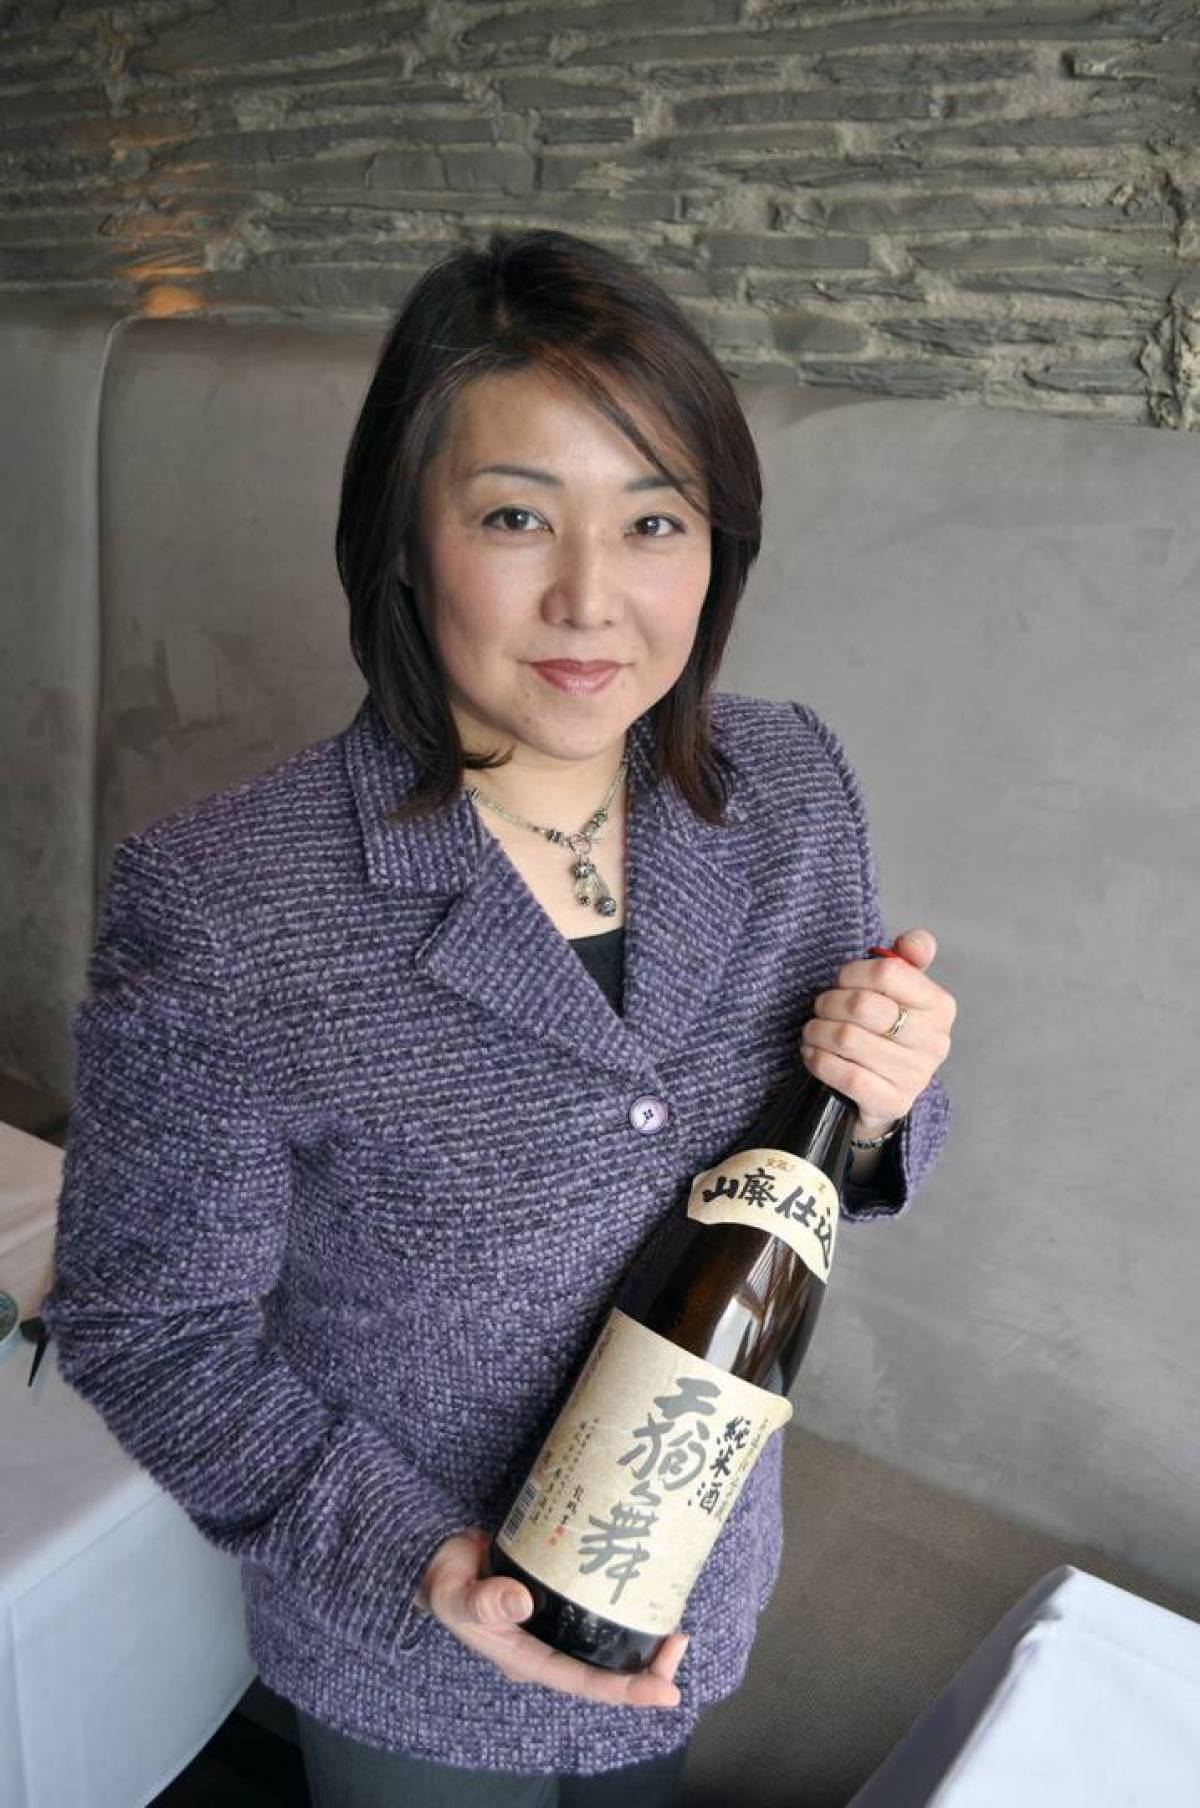 Iori Kataoka, owner of Yuwa, Photo from Georgia Straight